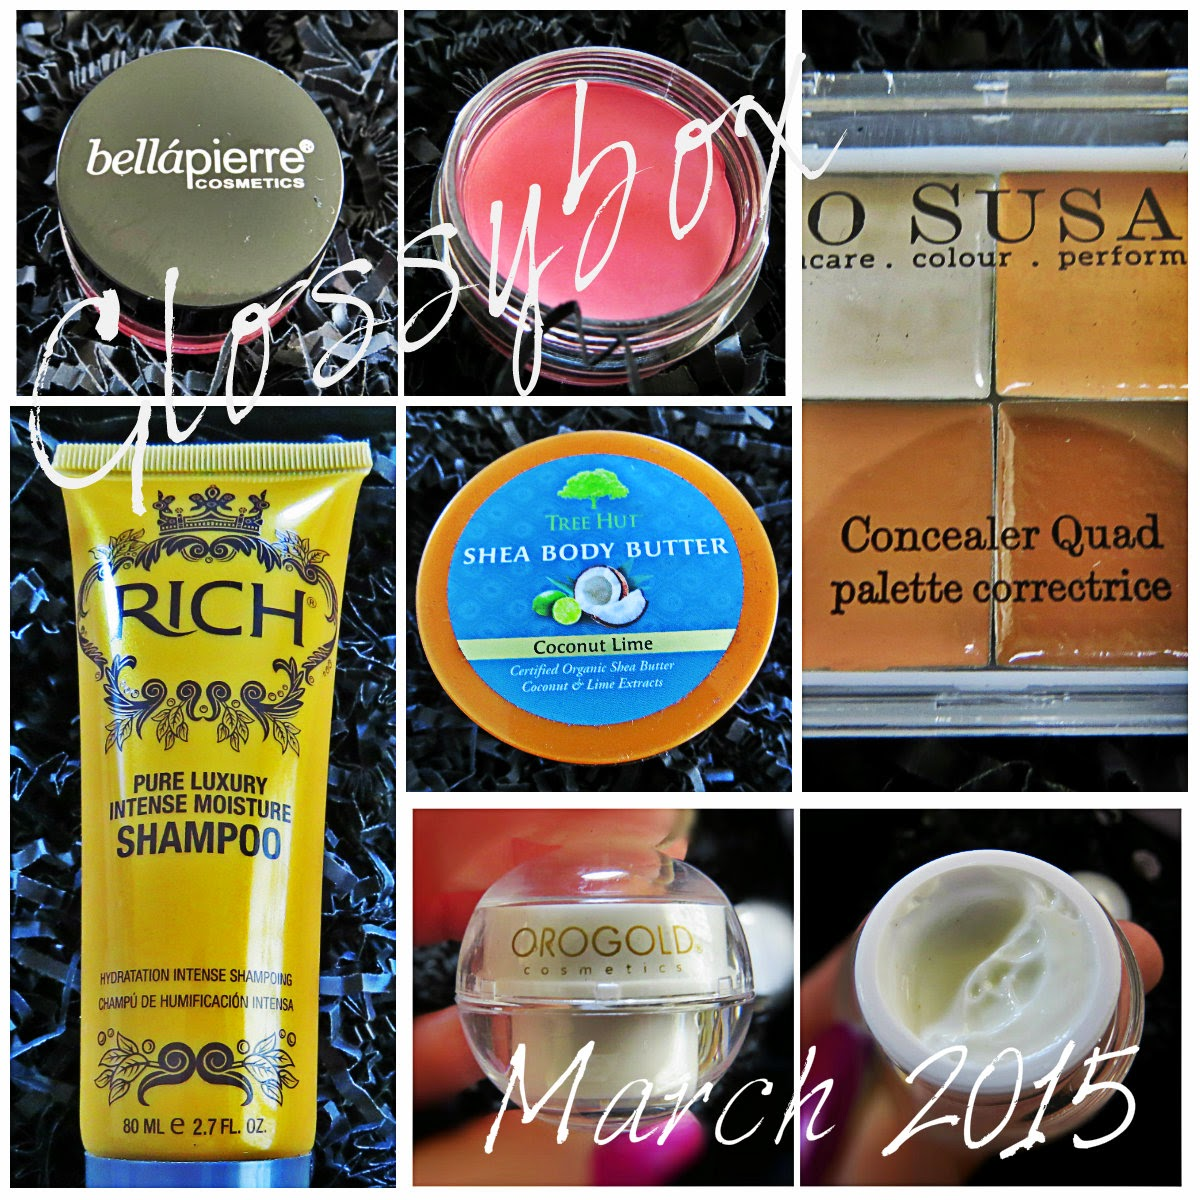 March 2015 Glossybox Review